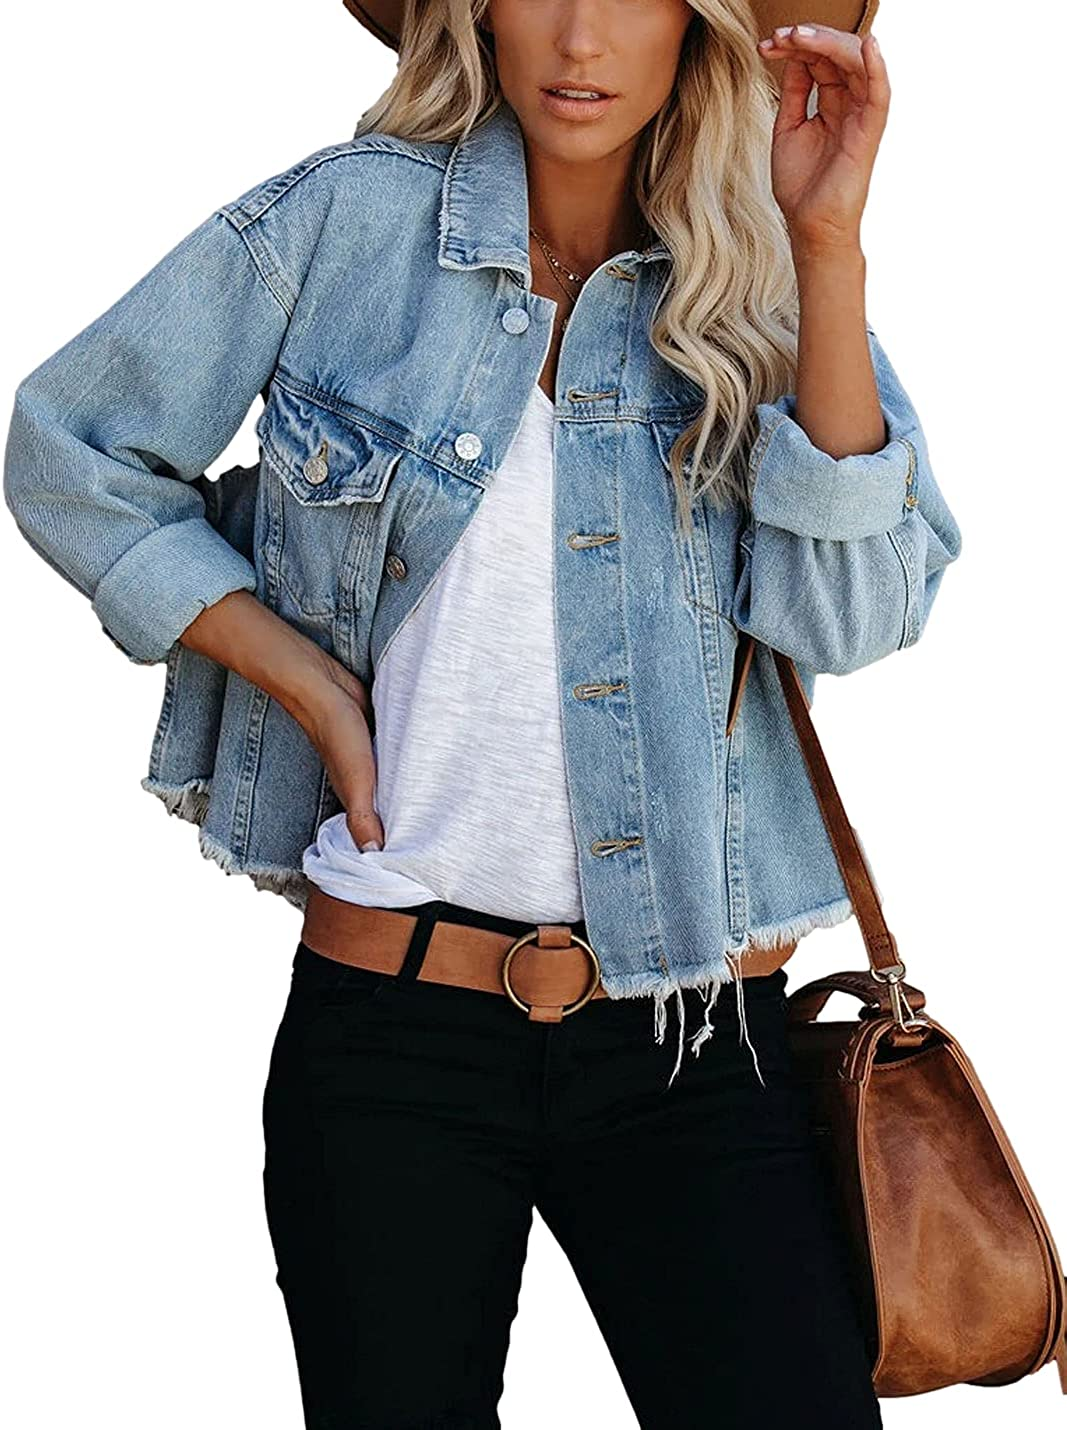 Laobee Women's Denim Jacket Classic Ripped Long Sleeve Button Down Jean Jacket with Pockets